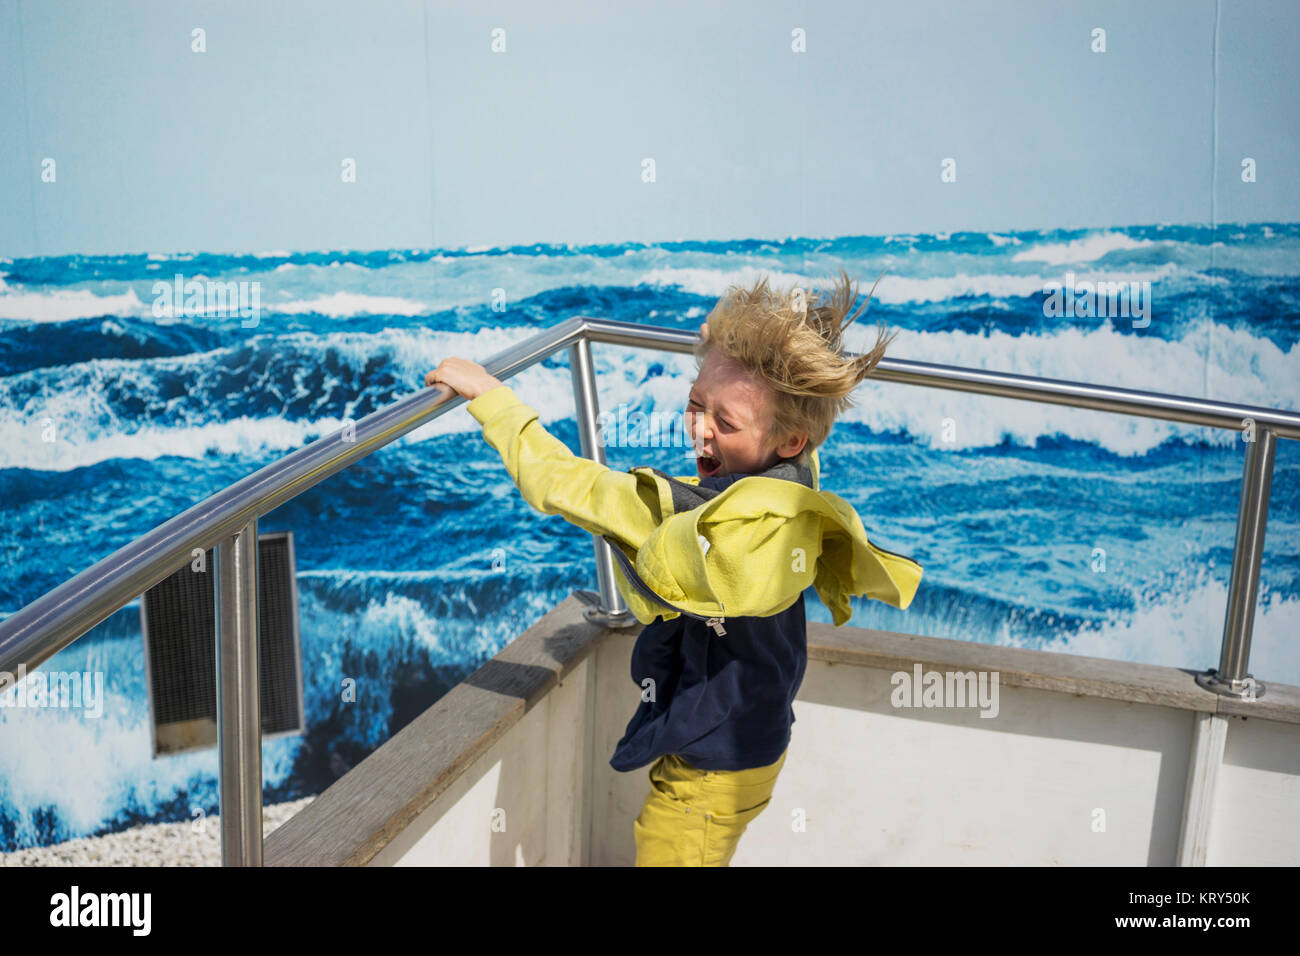 A young boy on a boat in wet weather gear - Stock Image